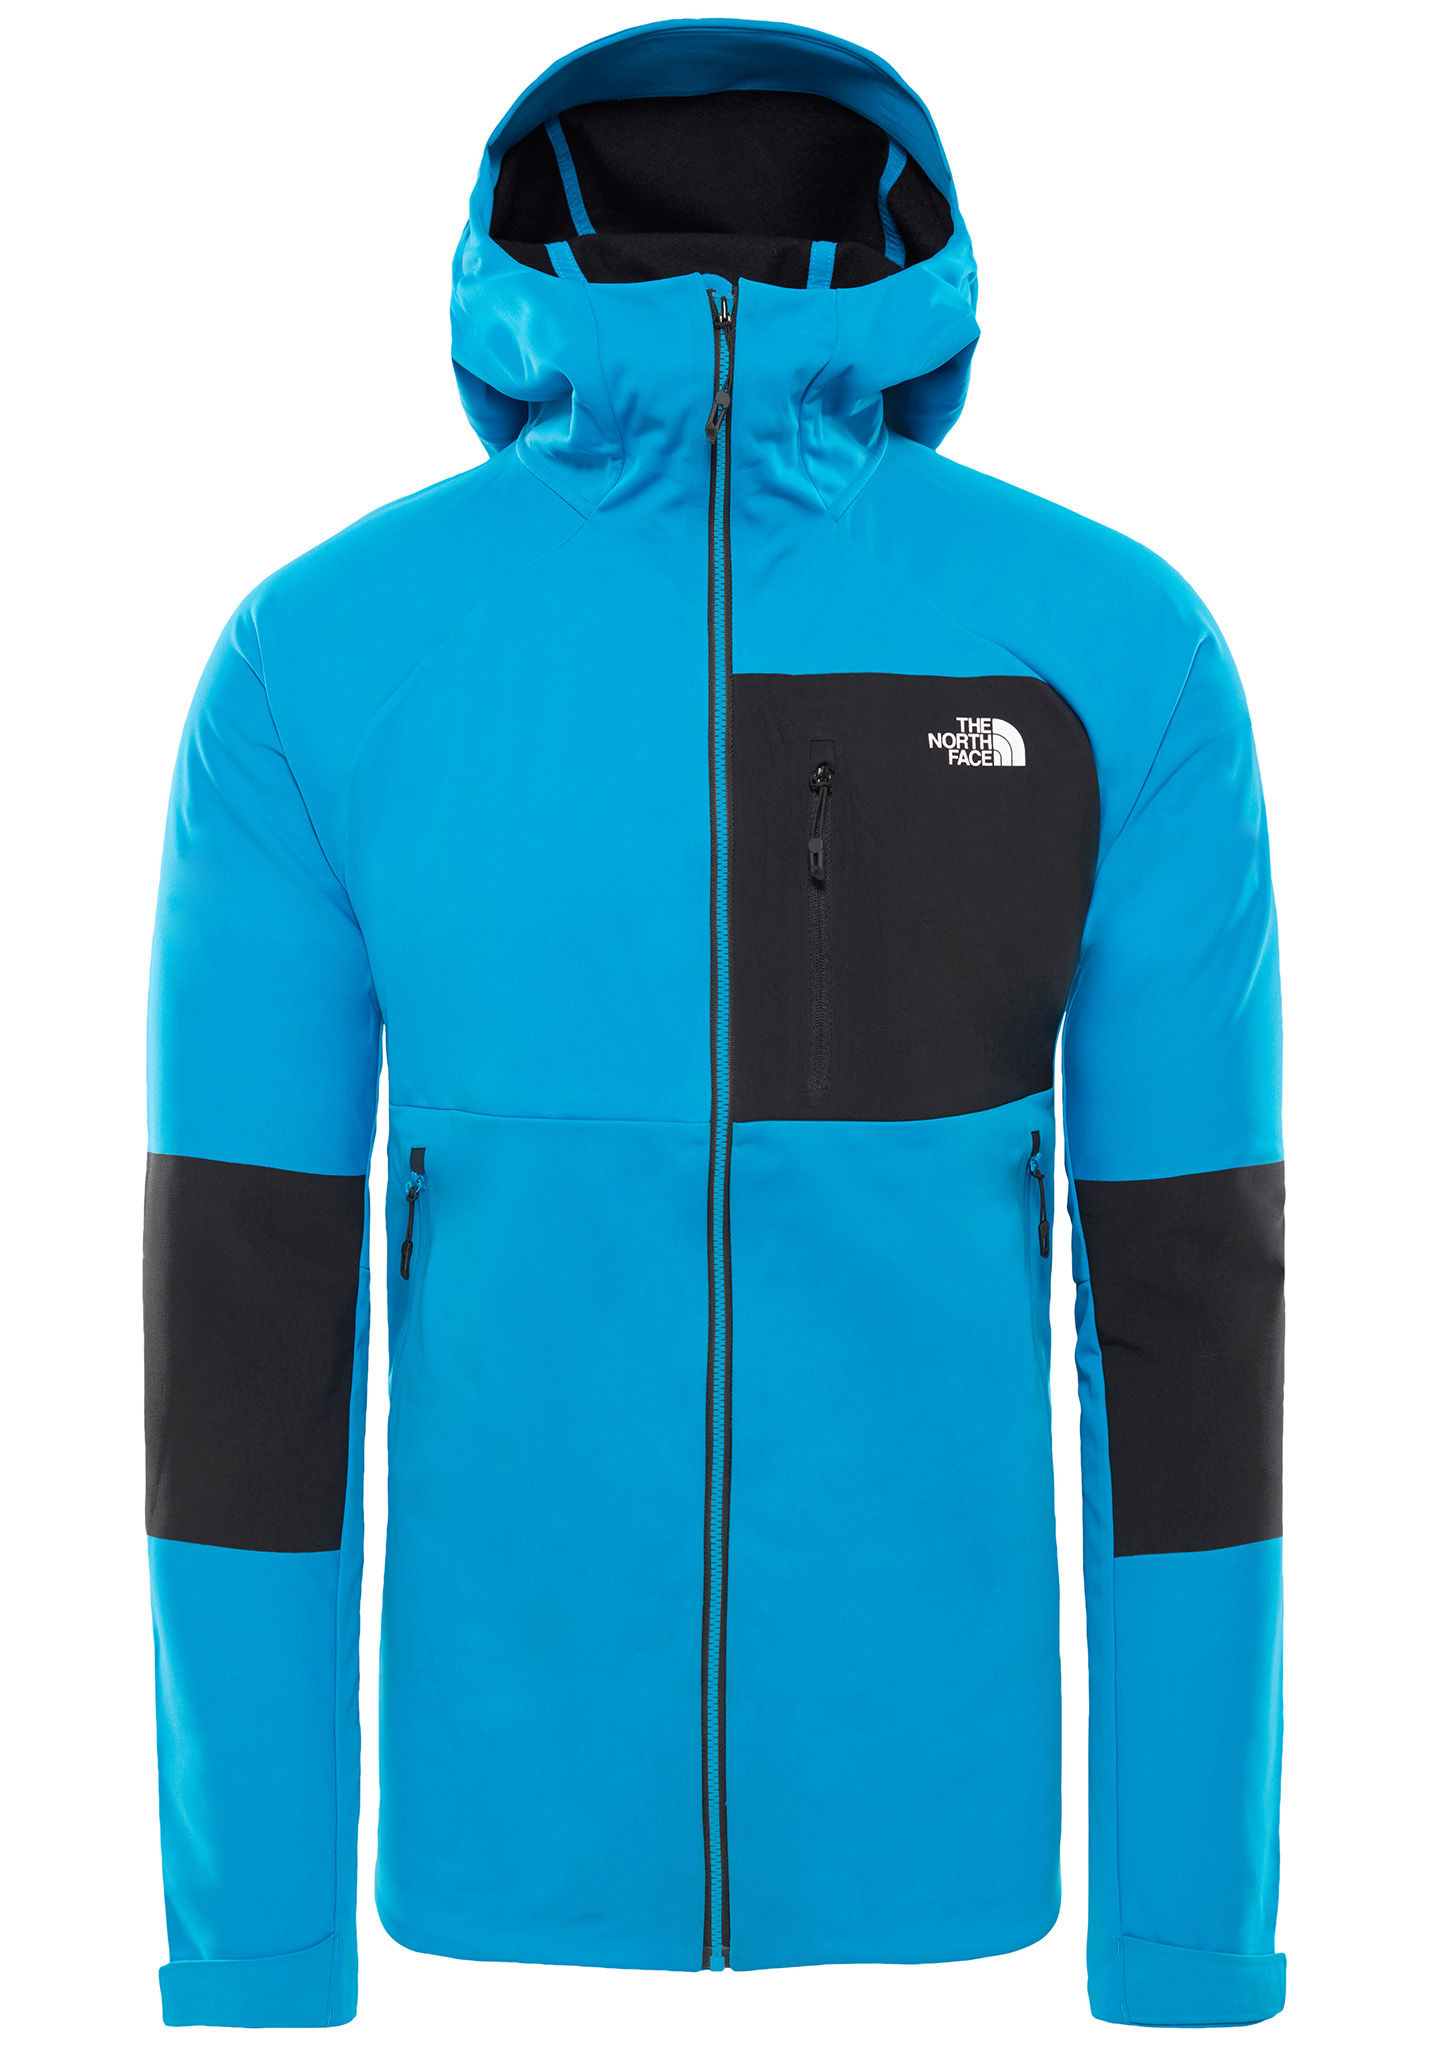 29cfc1463 THE NORTH FACE Impendor WindWall Hoody - Outdoor Jacket for Men - Blue